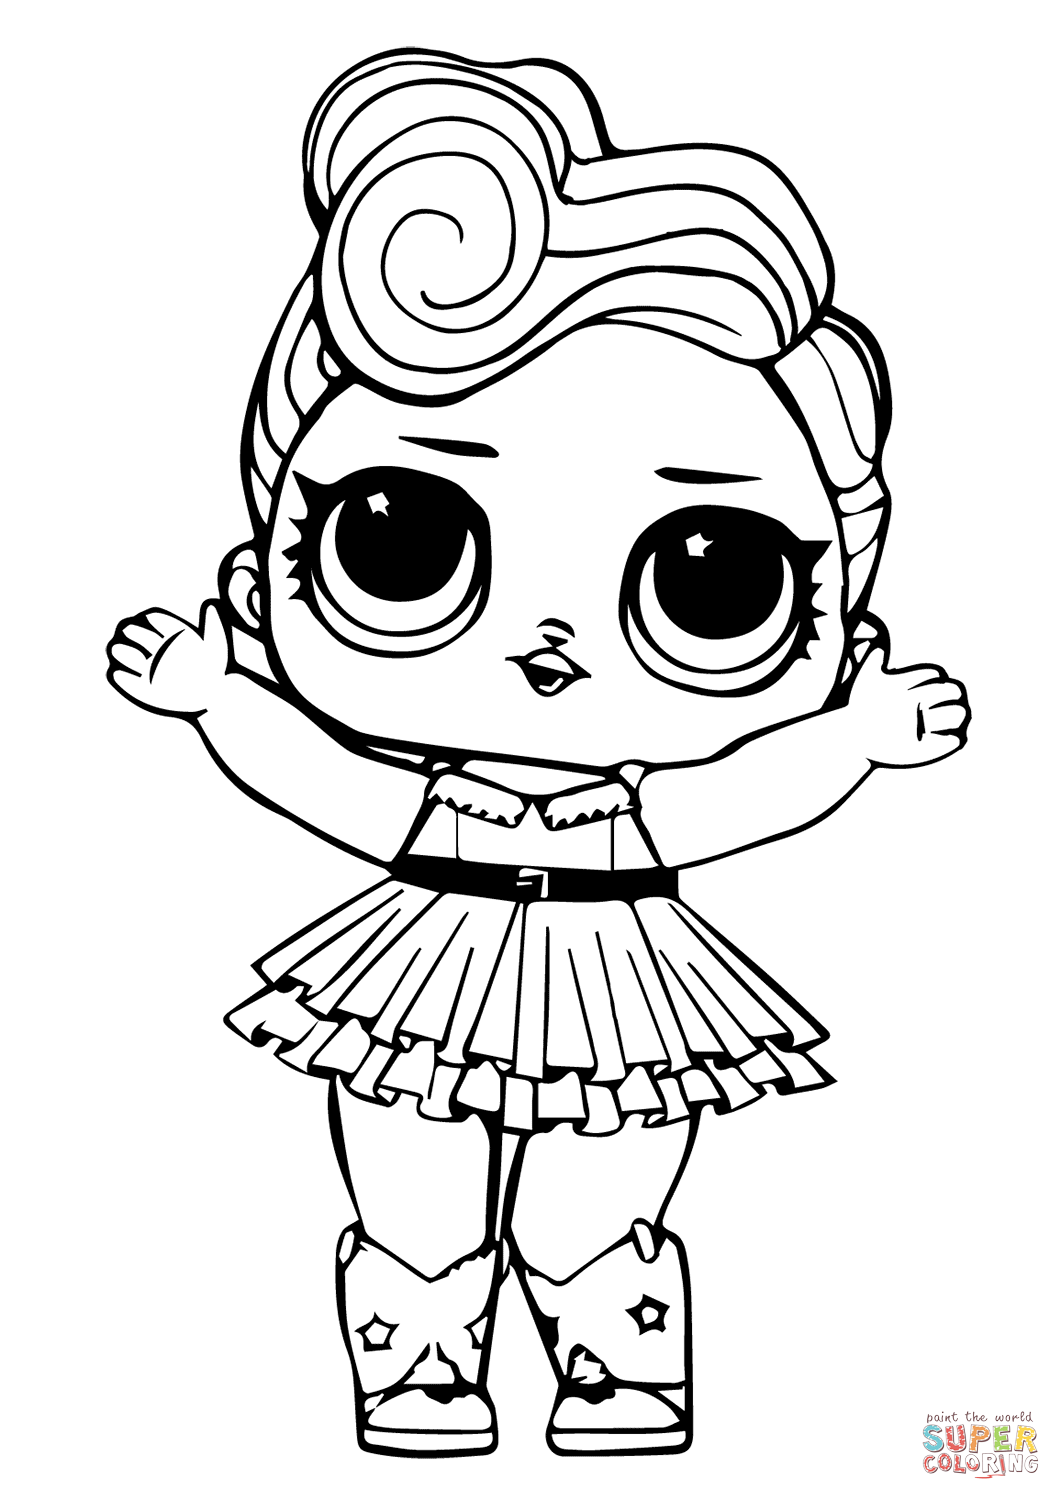 coloring images lol lol surprise free coloring image pages for kids lol coloring images